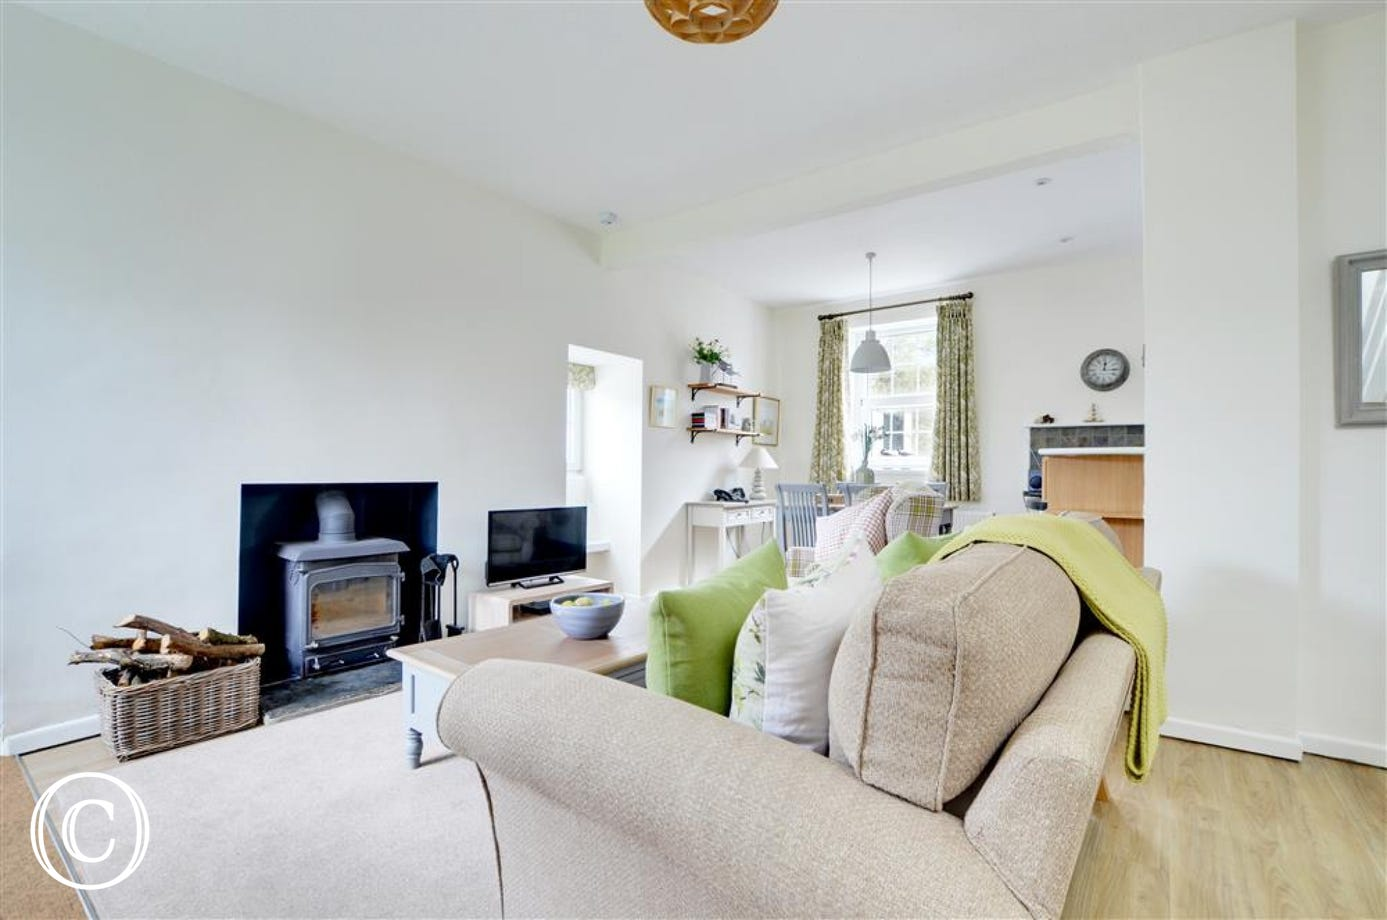 Comfy sofas surround an attractive feature fireplace with wood burning stove, perfect for cosy evenings at any time of year